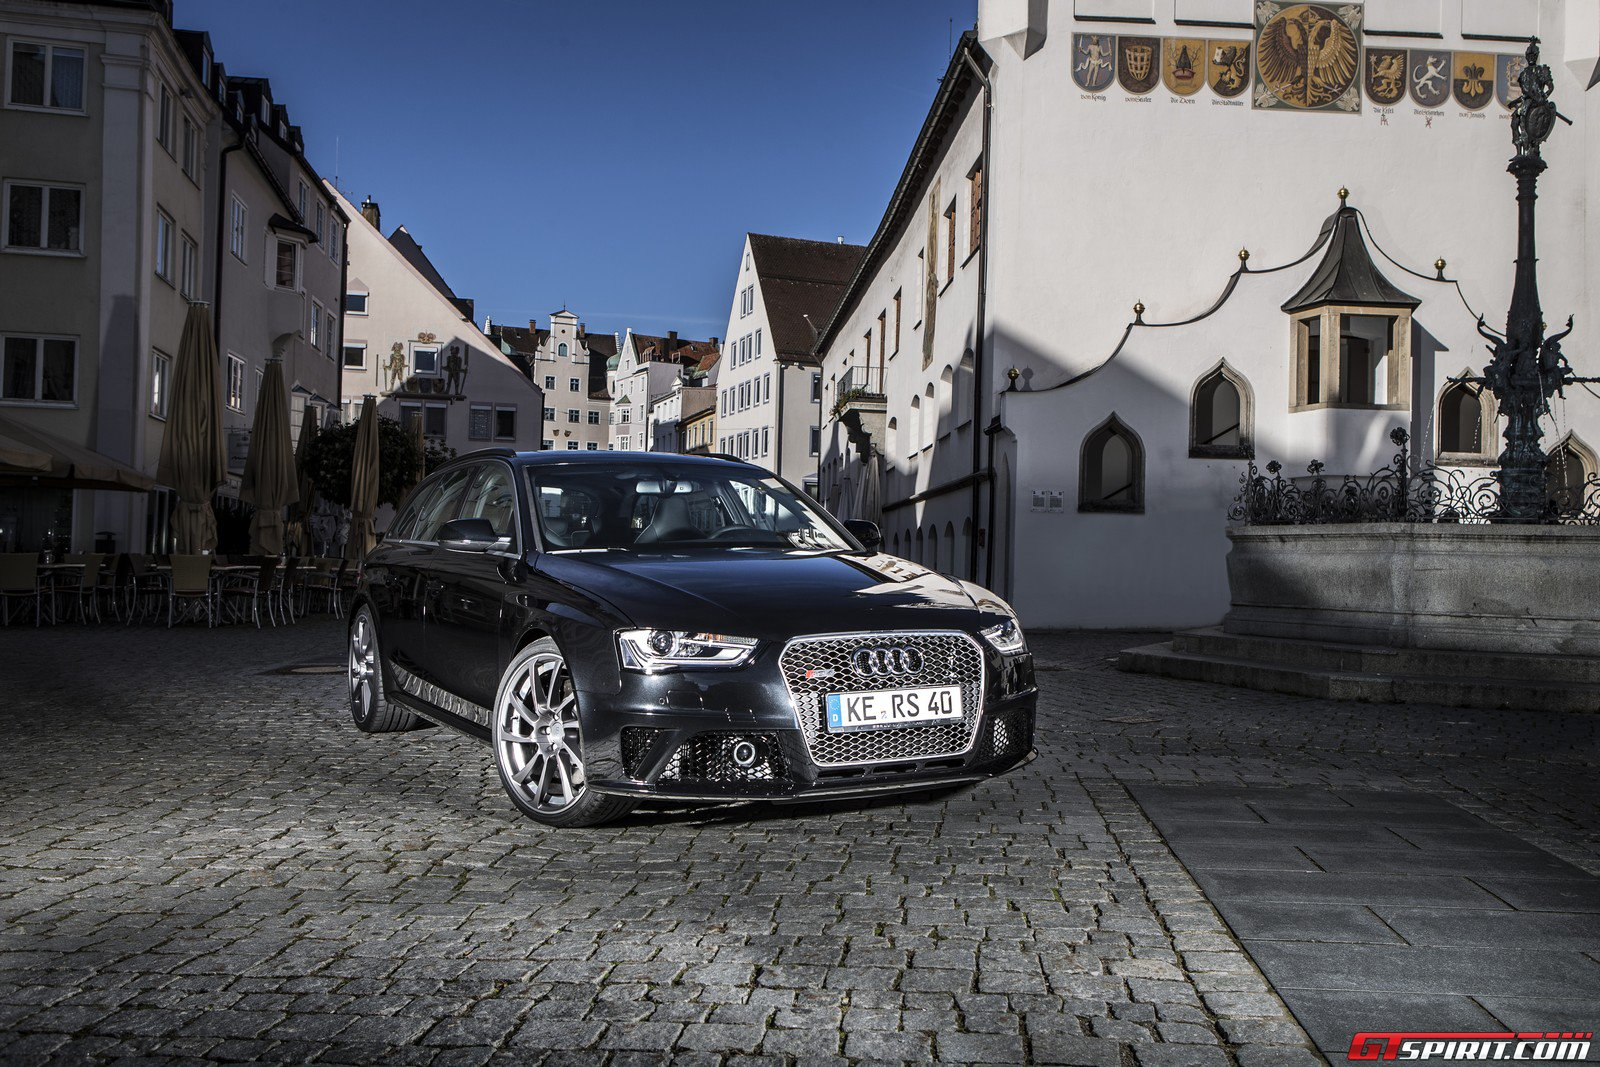 http://www.gtspirit.com/wp-content/gallery/abt-sportsline-rs4/abt-sportsline-rs4-005.jpg